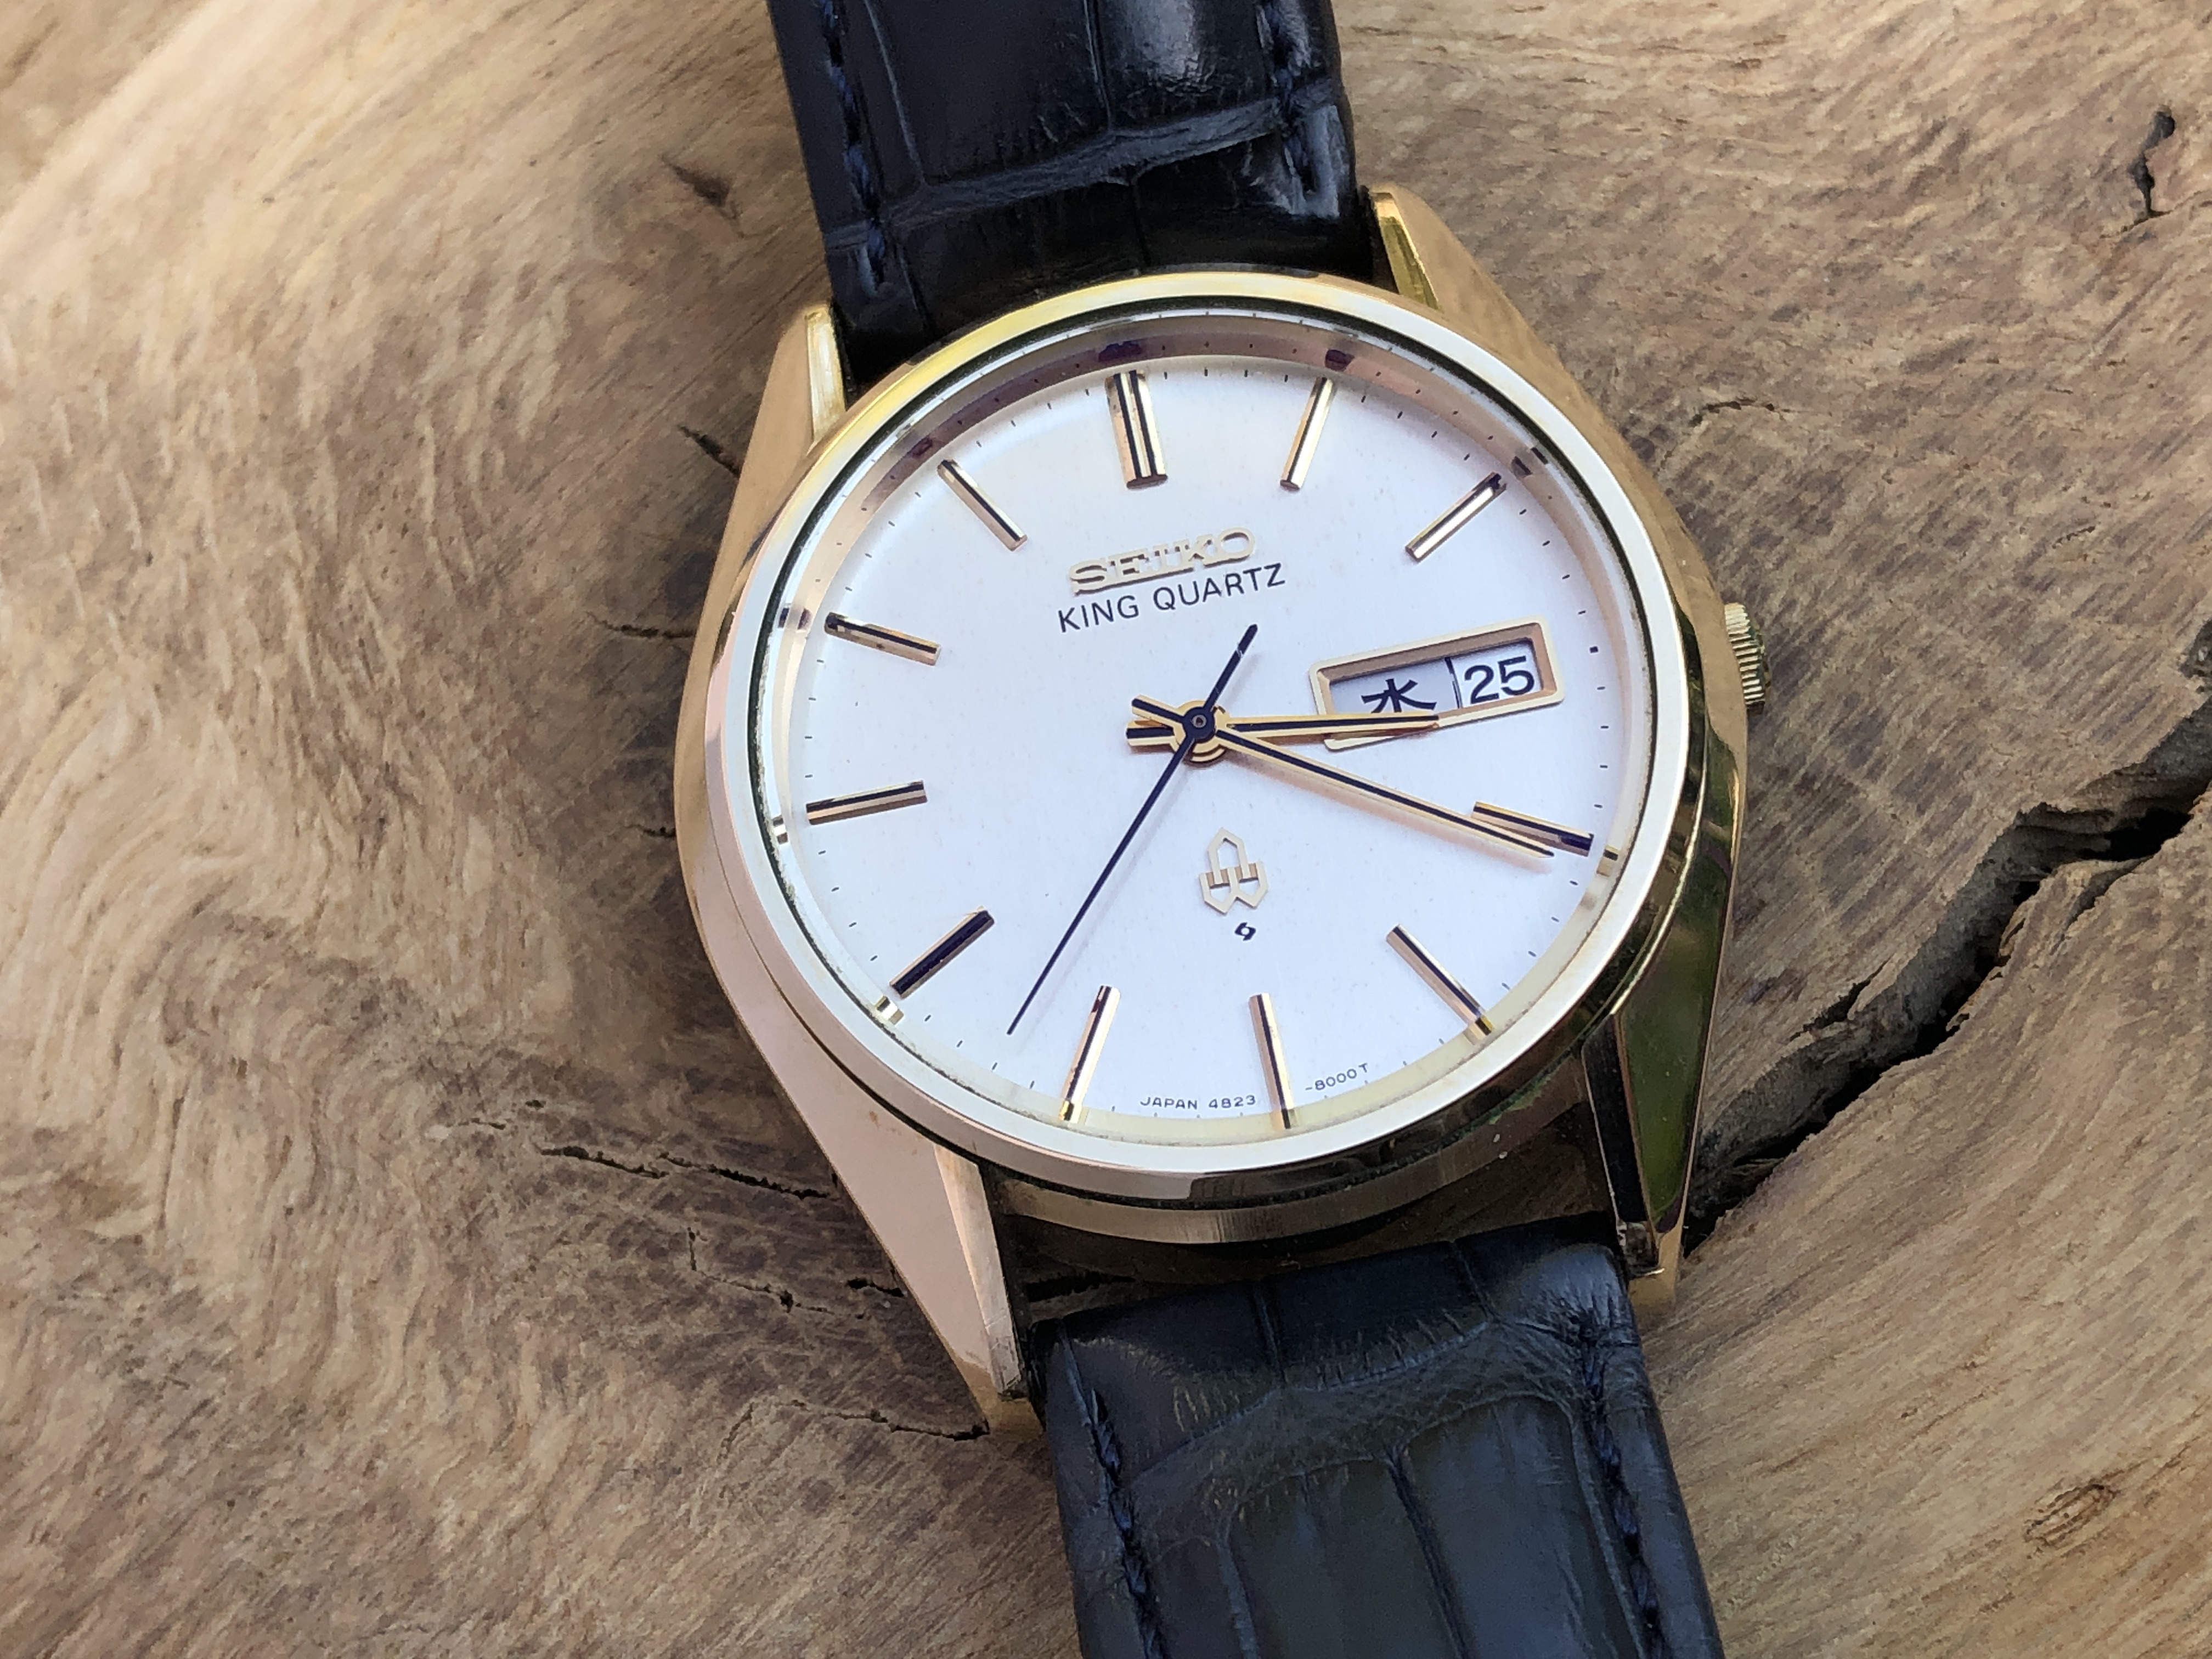 Seiko King Quartz 4823-8000 CG (Sold)